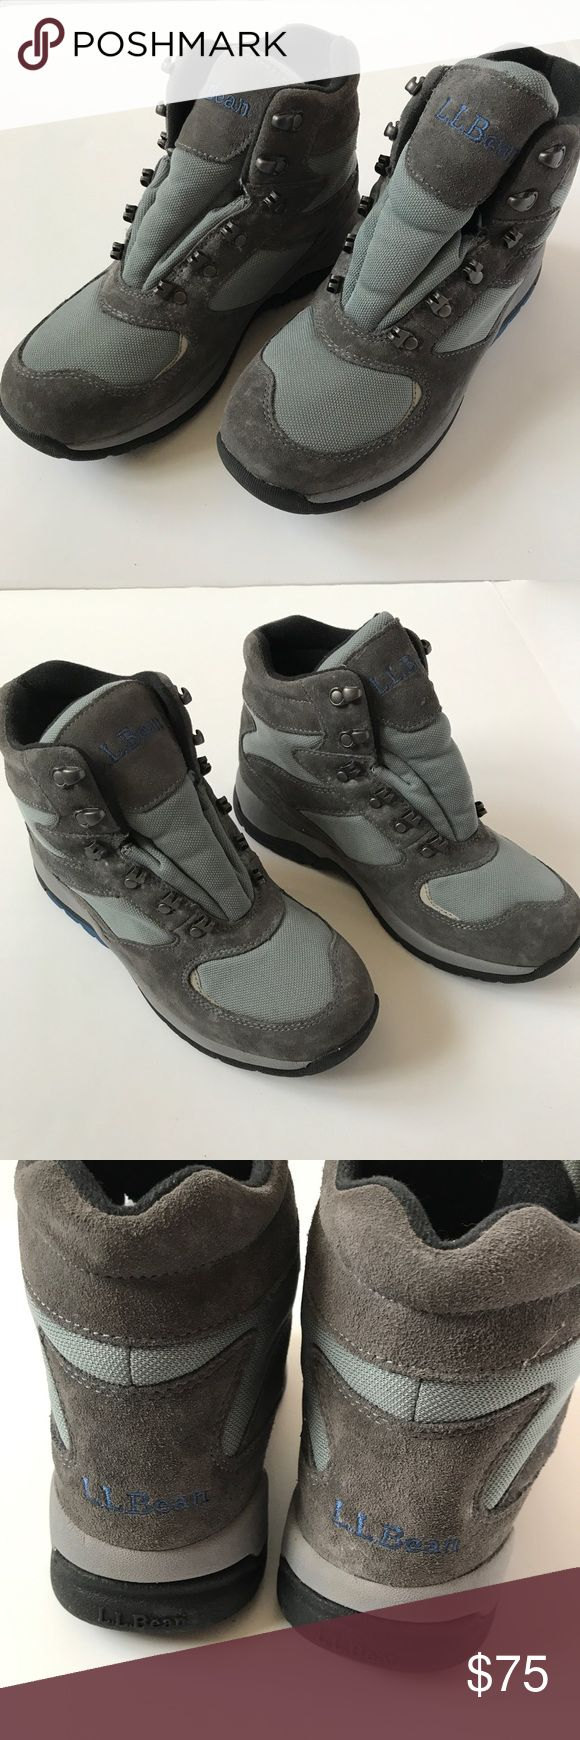 LL Bean Primaloft Insulated Cold Hiking Boots Size: Women's 9W Color: Gray Style: Cold Weather Hiking Boot Condition: Boots are barely worn, very light wear. No laces included.   This item comes from a smoke-free and pet-free home.  Please review all photos before making your purchase.  I am happy to provide additional photos or measurements, just let me know! L.L. Bean Shoes Winter & Rain Boots